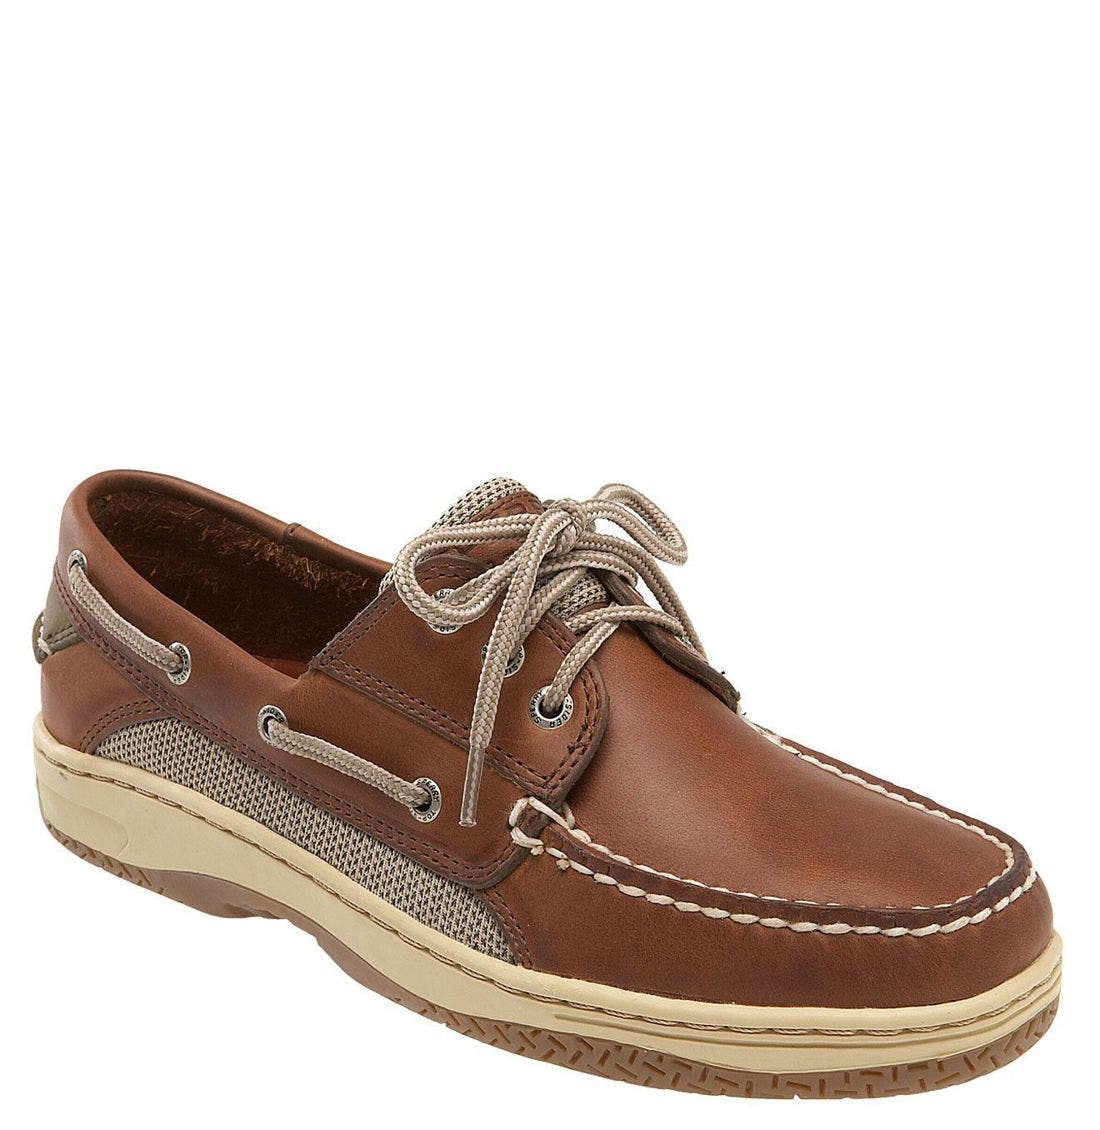 Alternate Image 1 Selected - Sperry 'Billfish' Boat Shoe (Men)